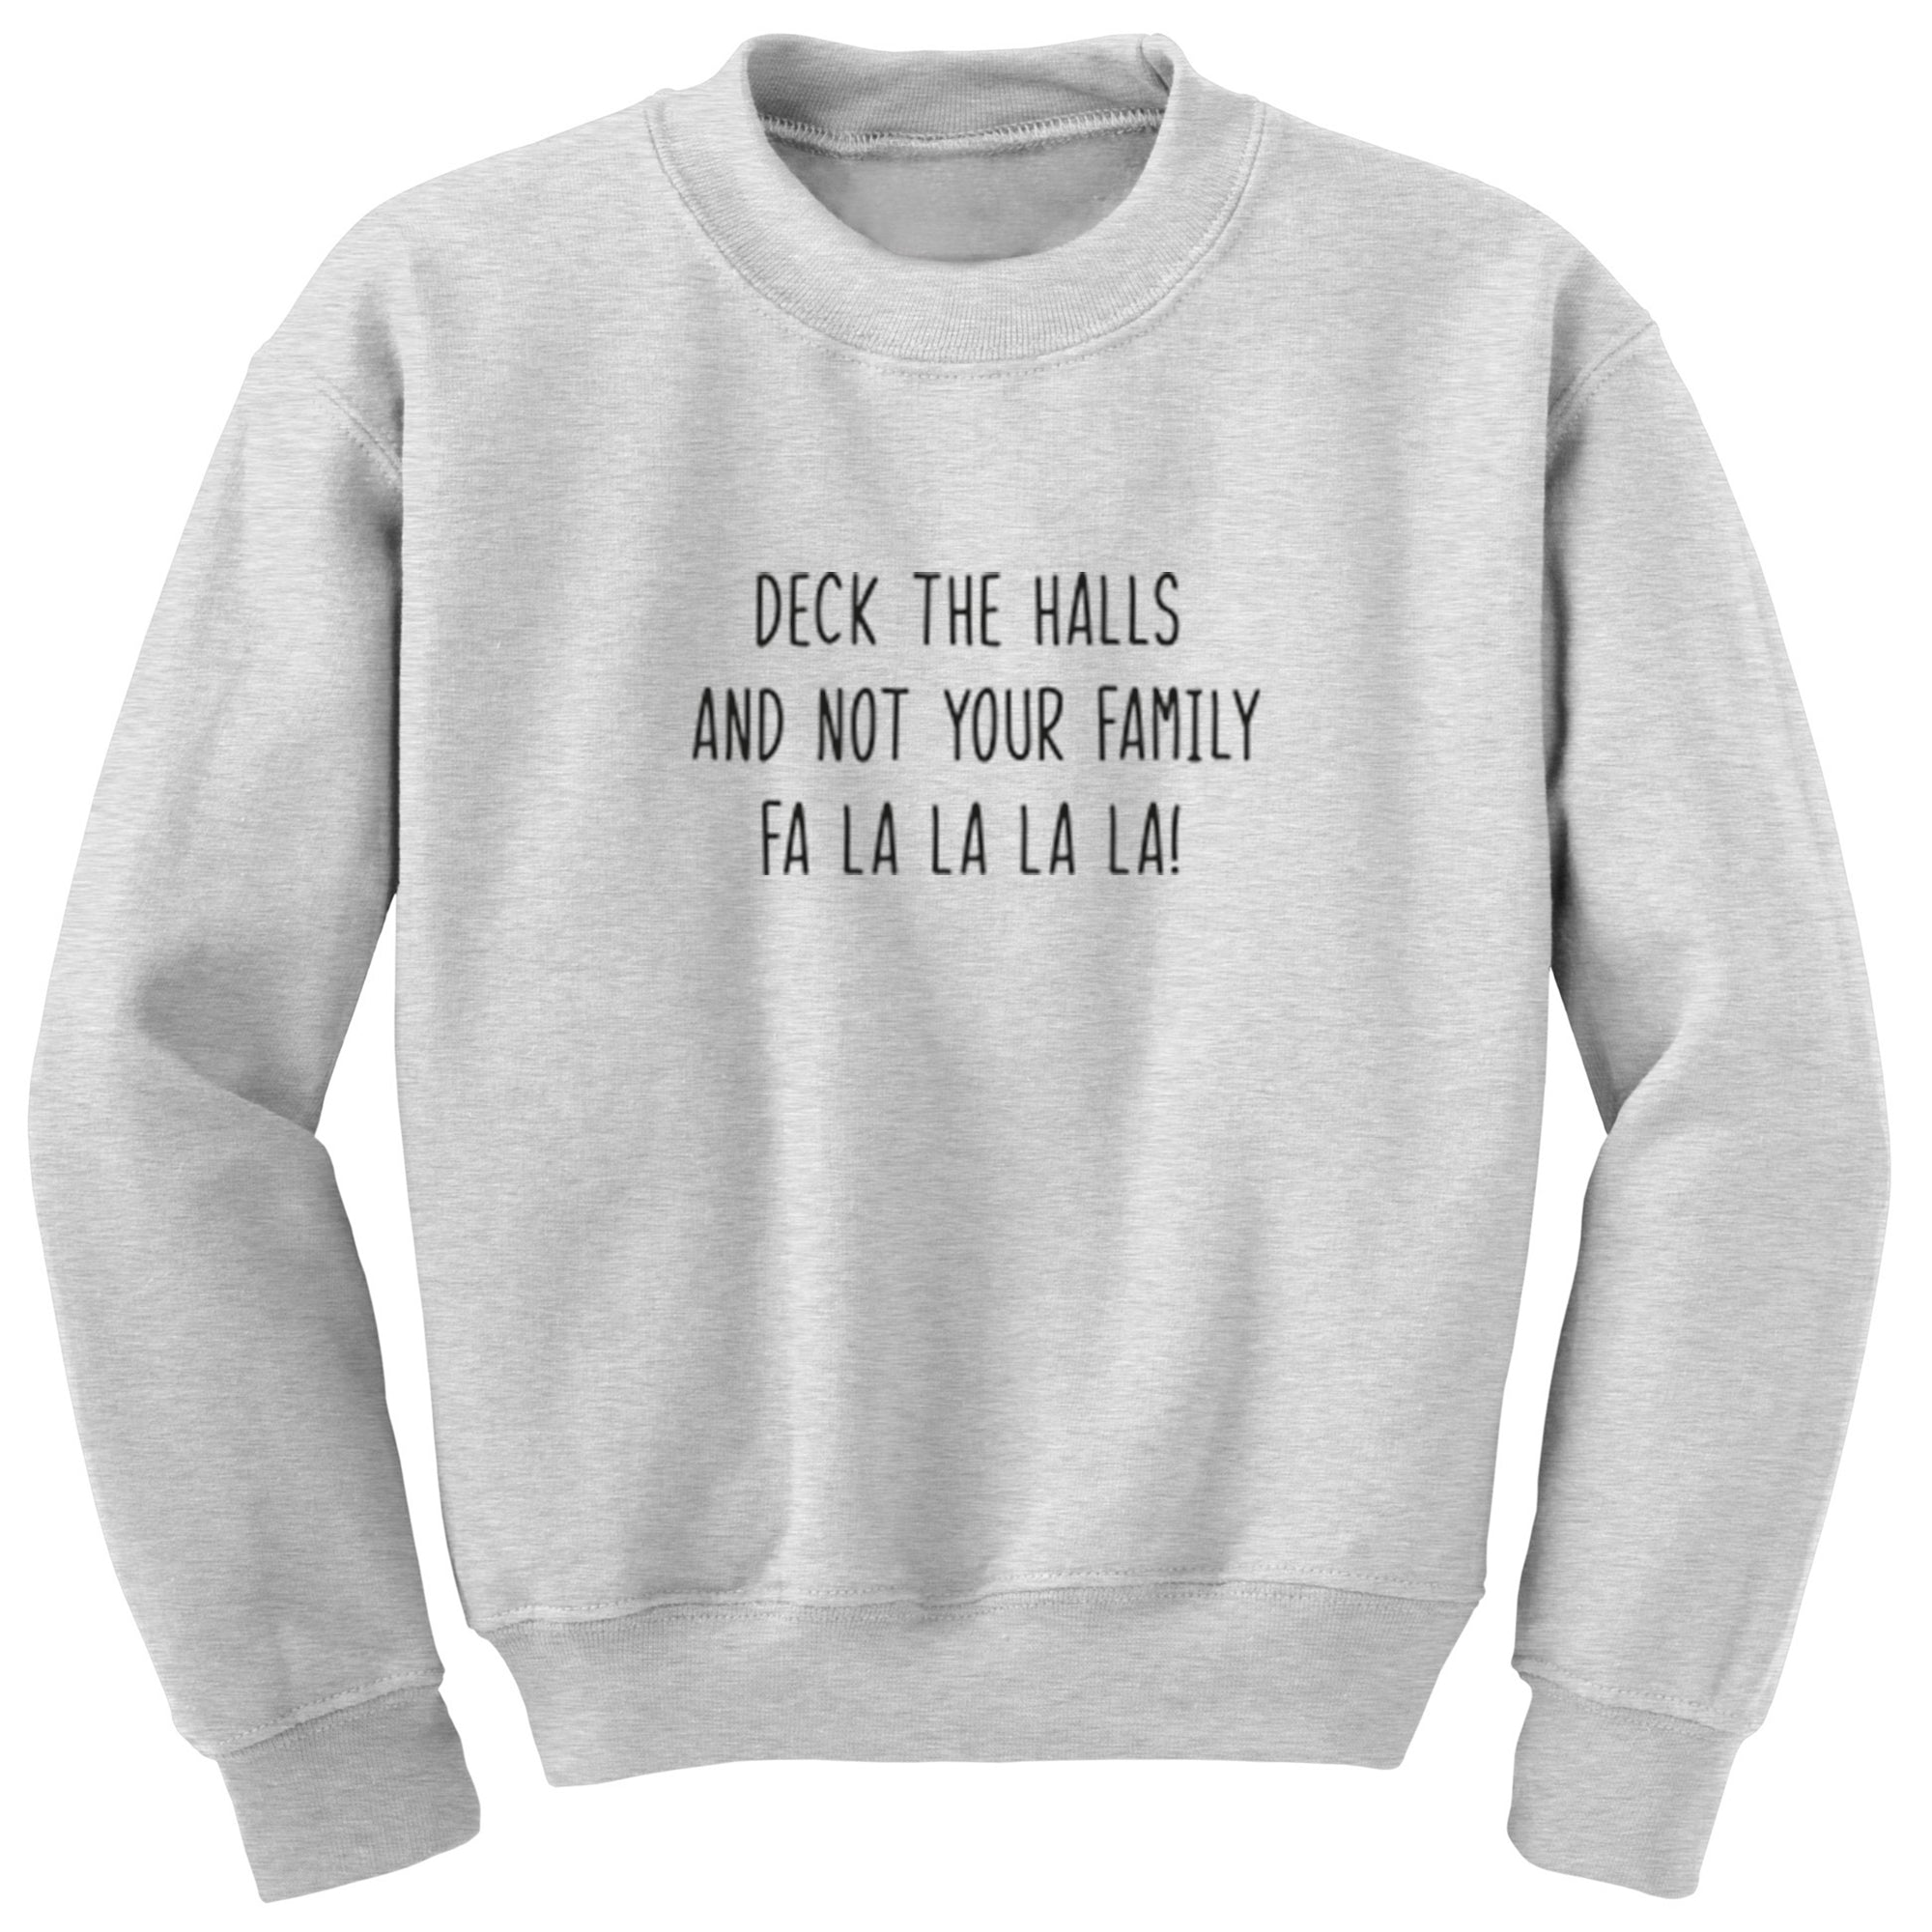 Deck The Halls And Not Your Family Fa La La La La Unisex Jumper S1215